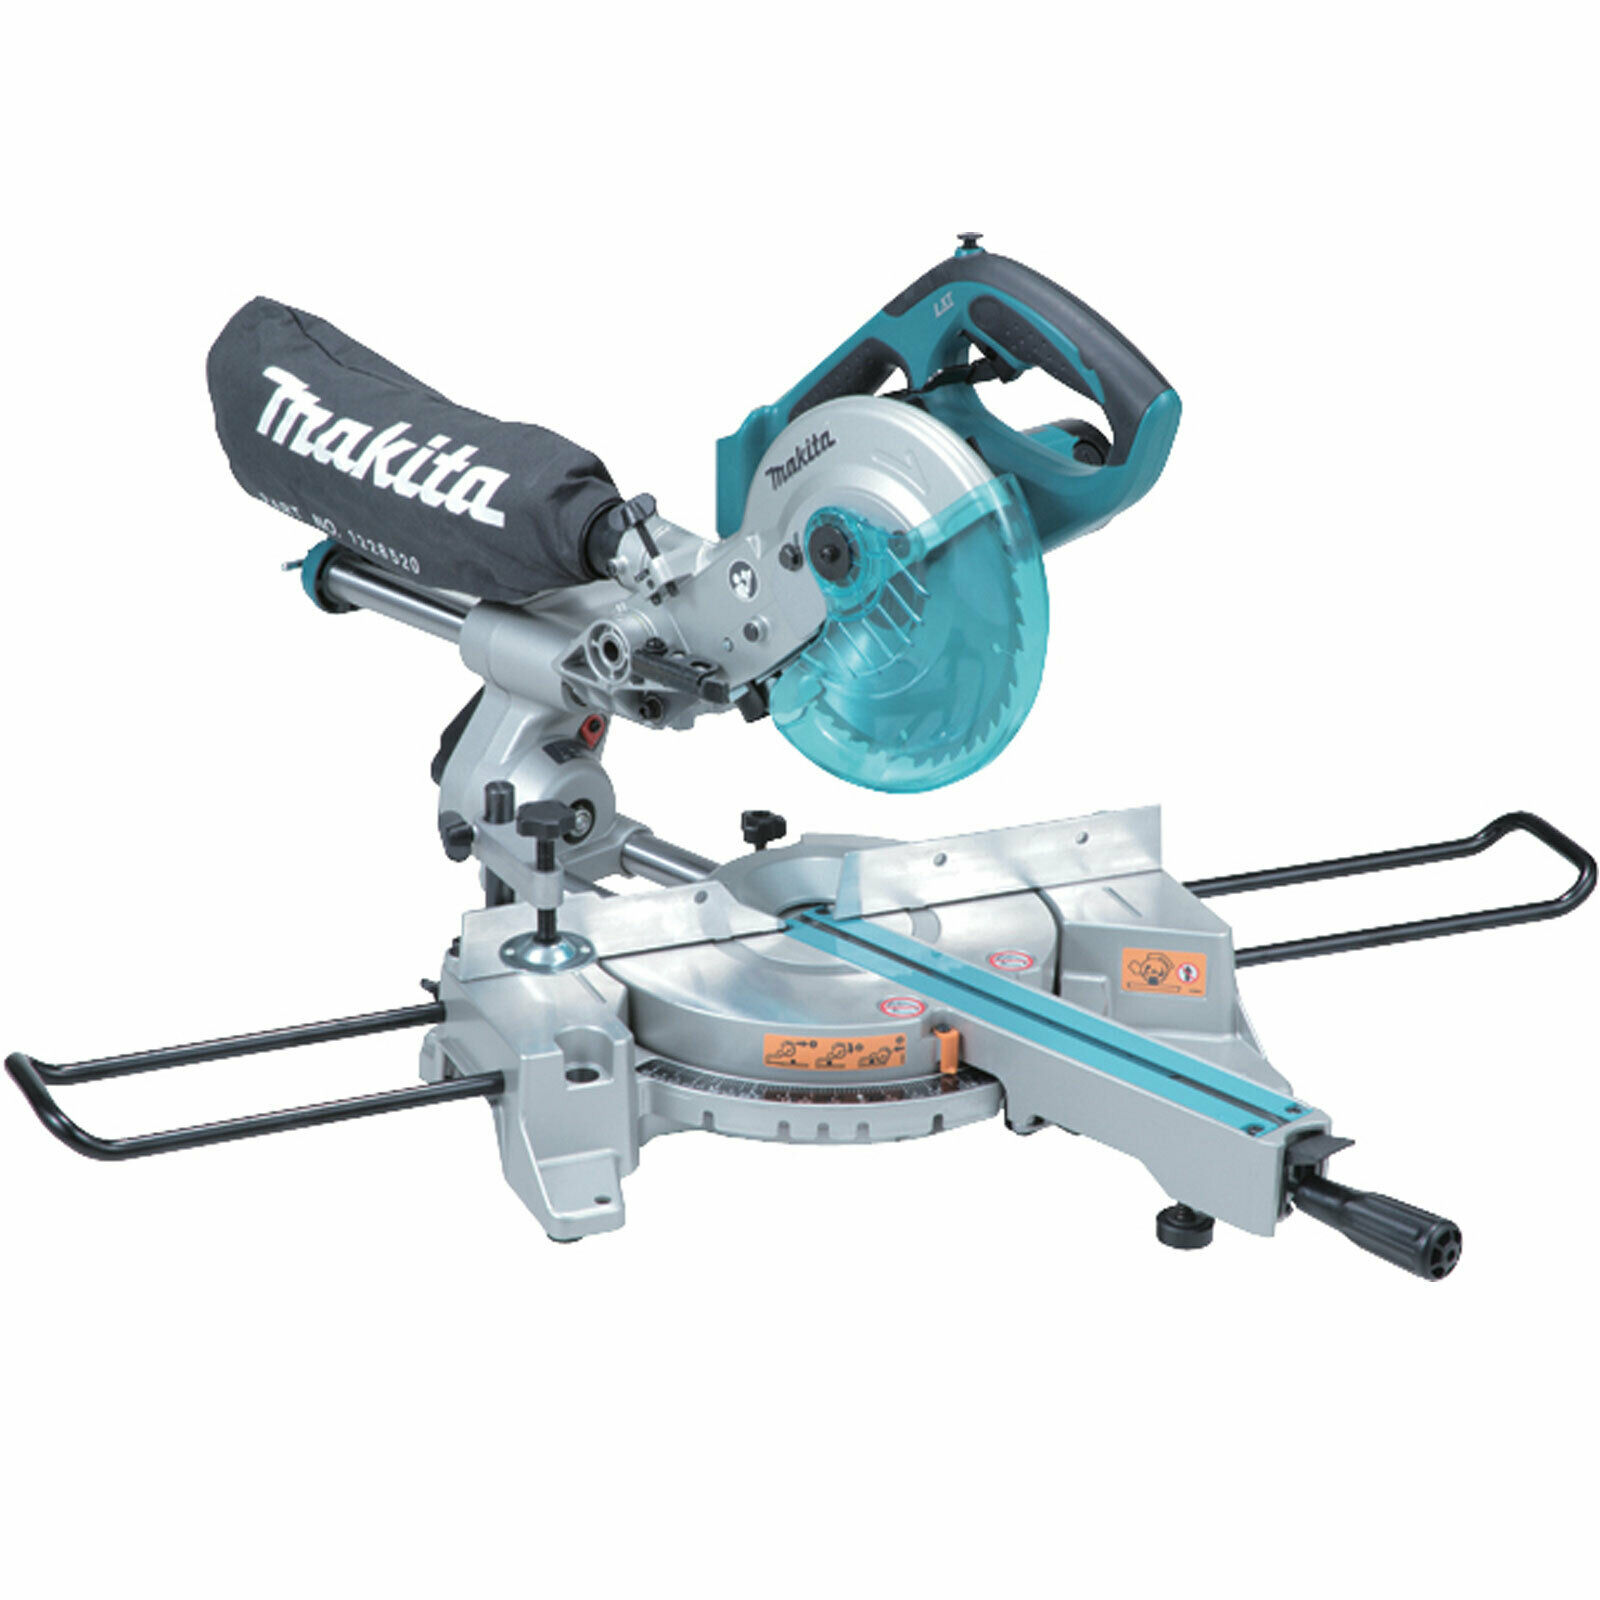 MAKITA 18V 190MM LXT SLIDE/COMPOUND MITRE SAW - DLS713N - BODY ONLY